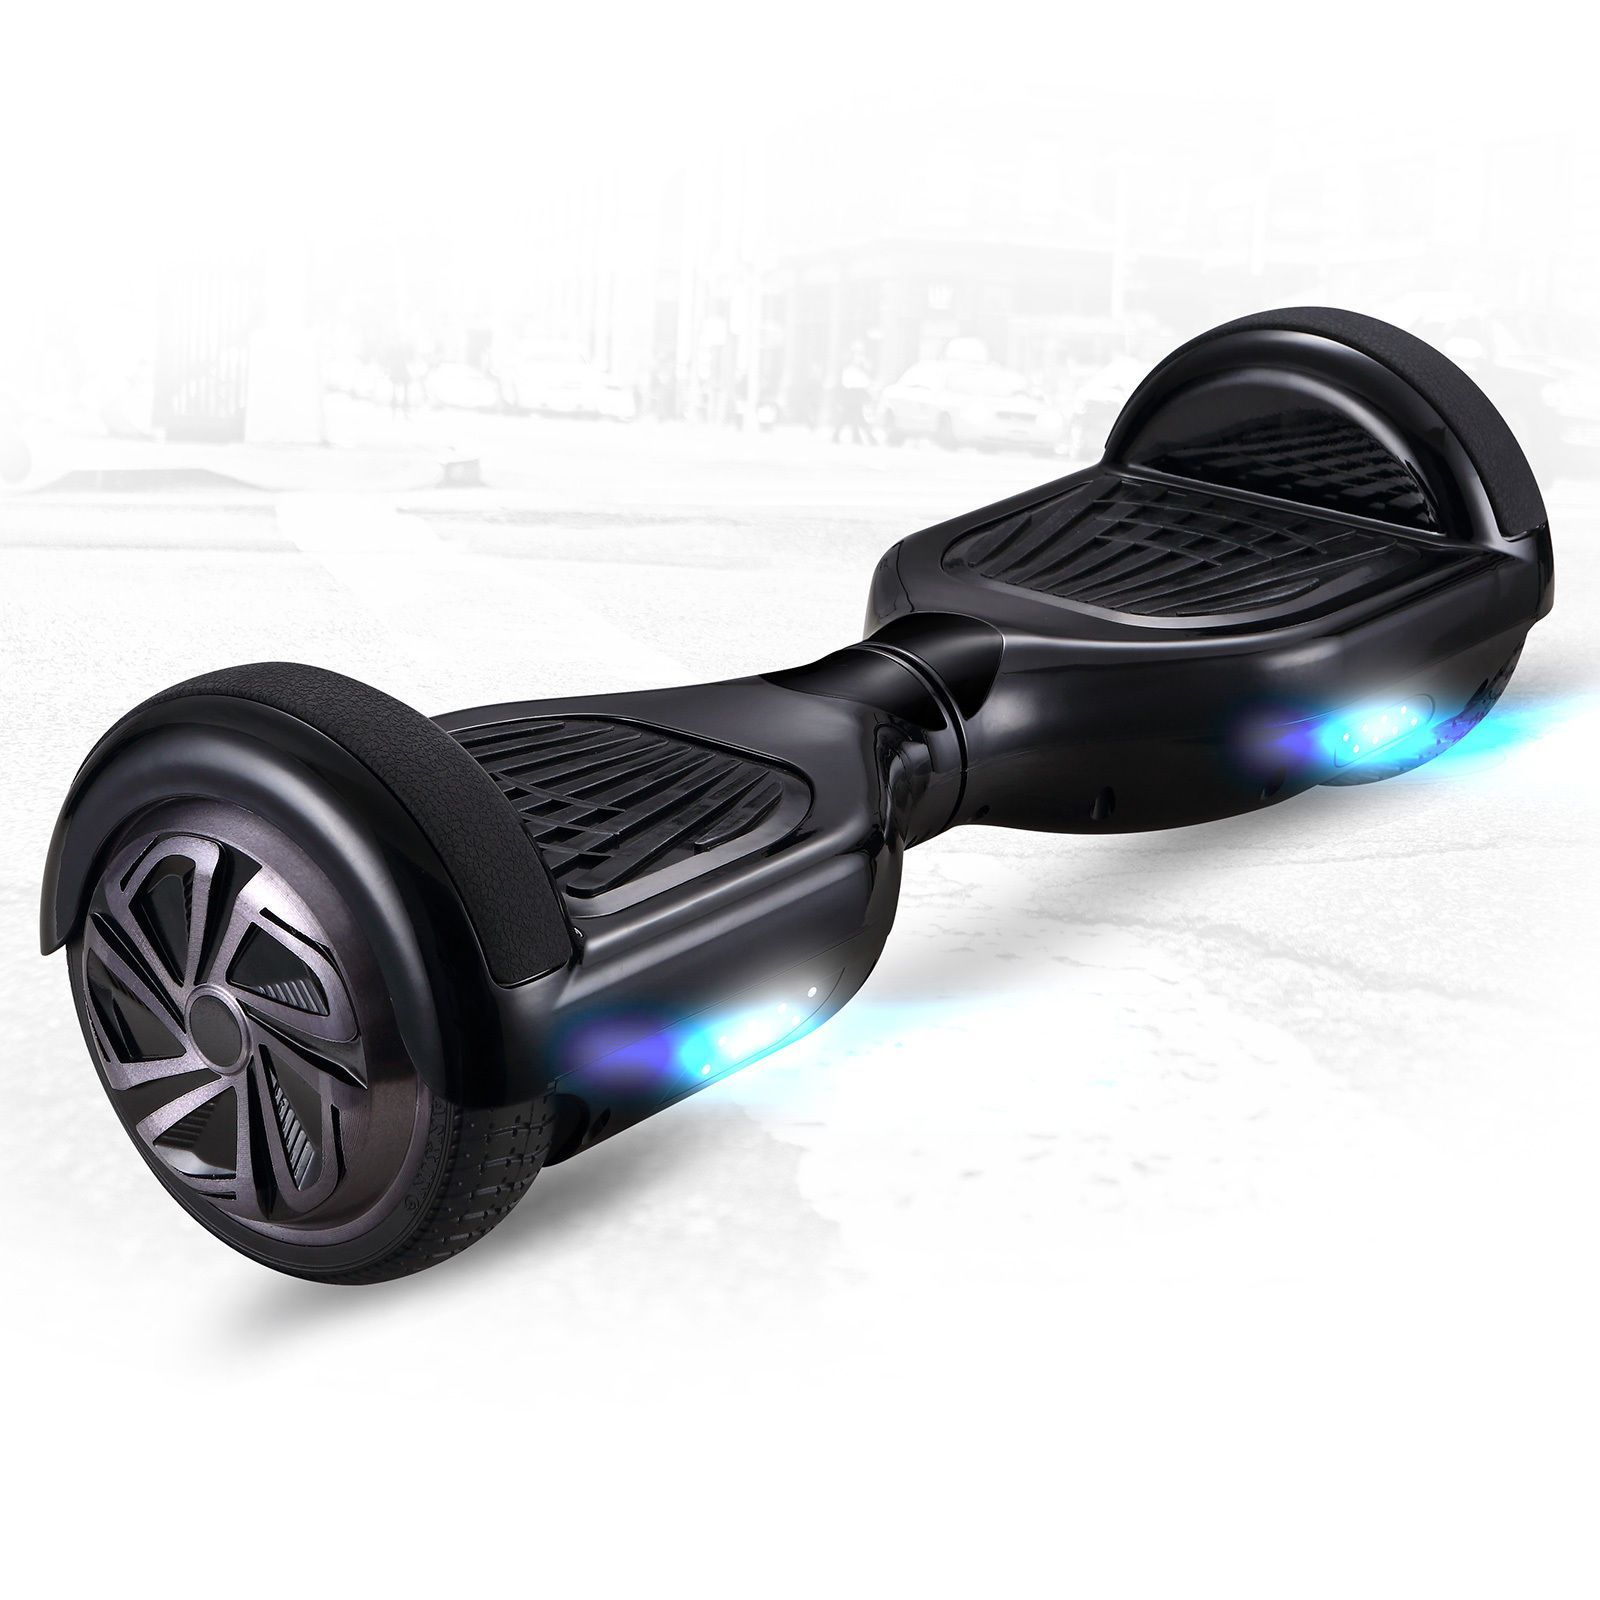 What is Hoverboard?